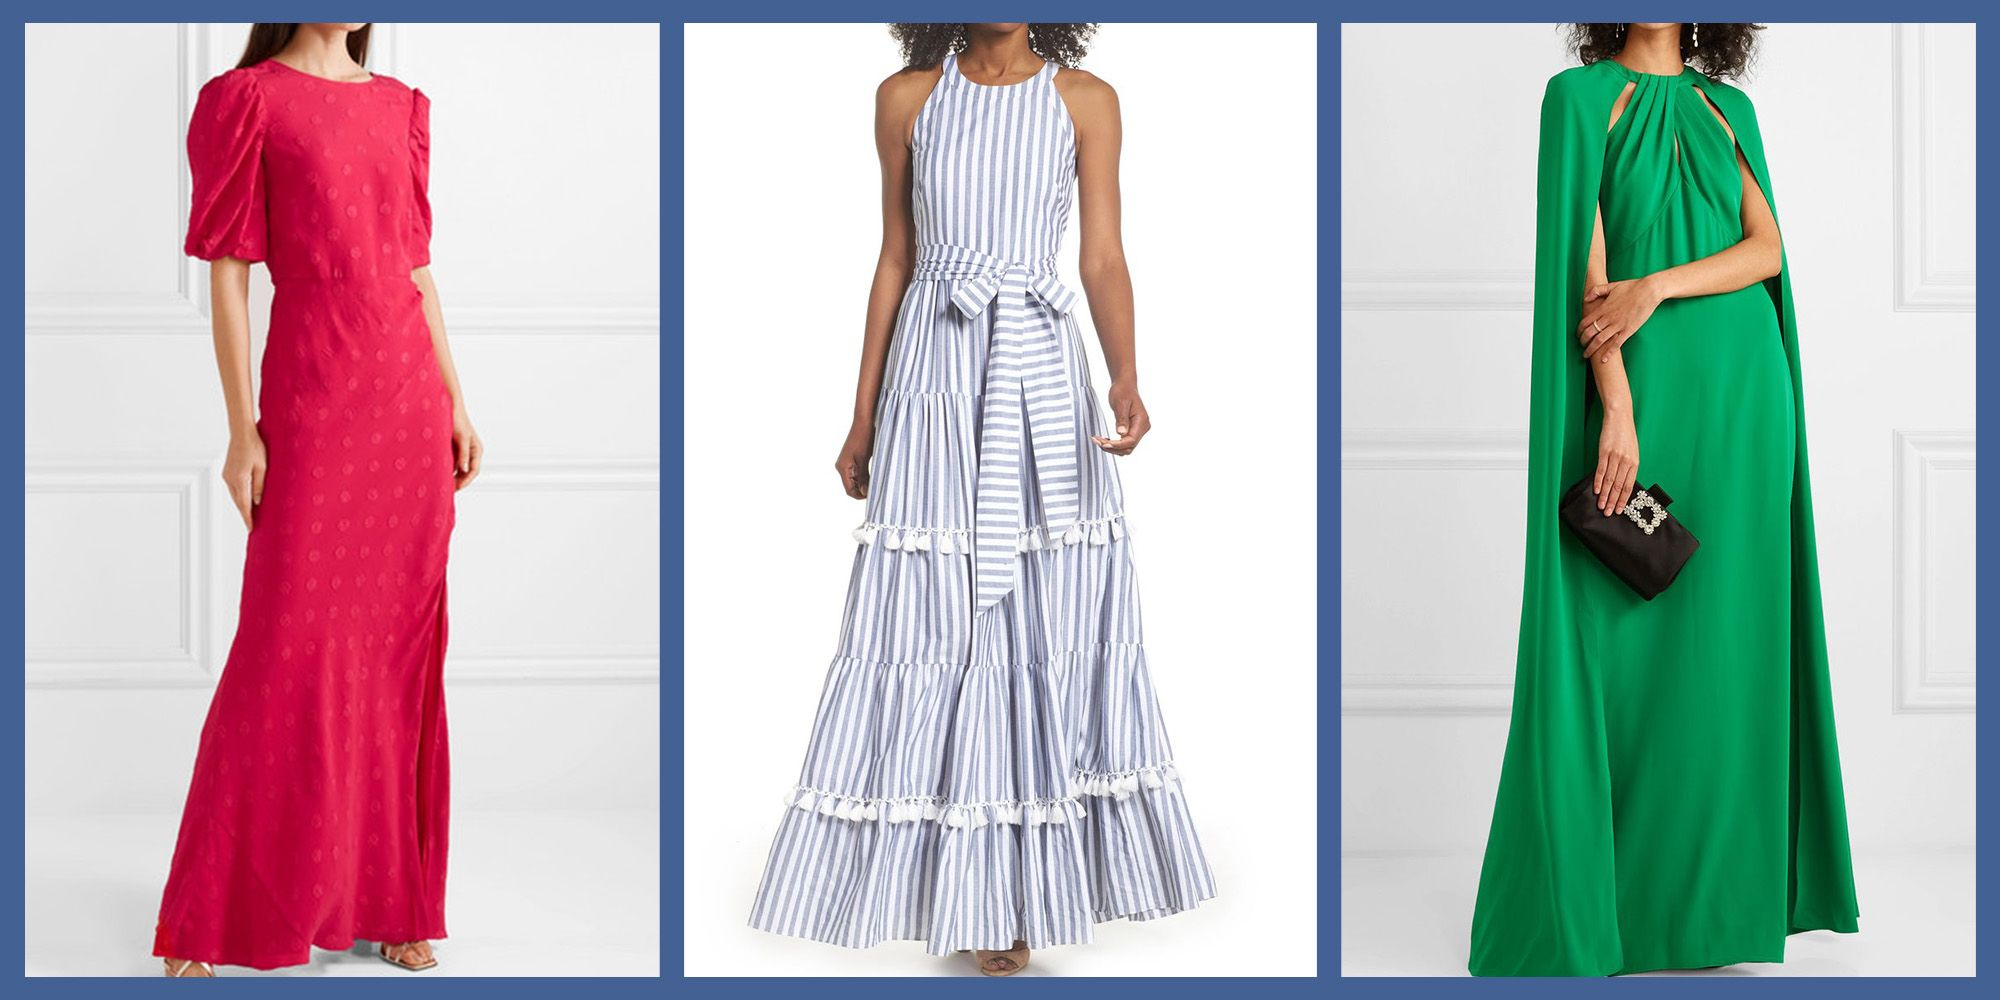 cd275acacf What to Wear to a Summer 2019 Wedding - 15 Stylish Summer Wedding Guest  Dresses